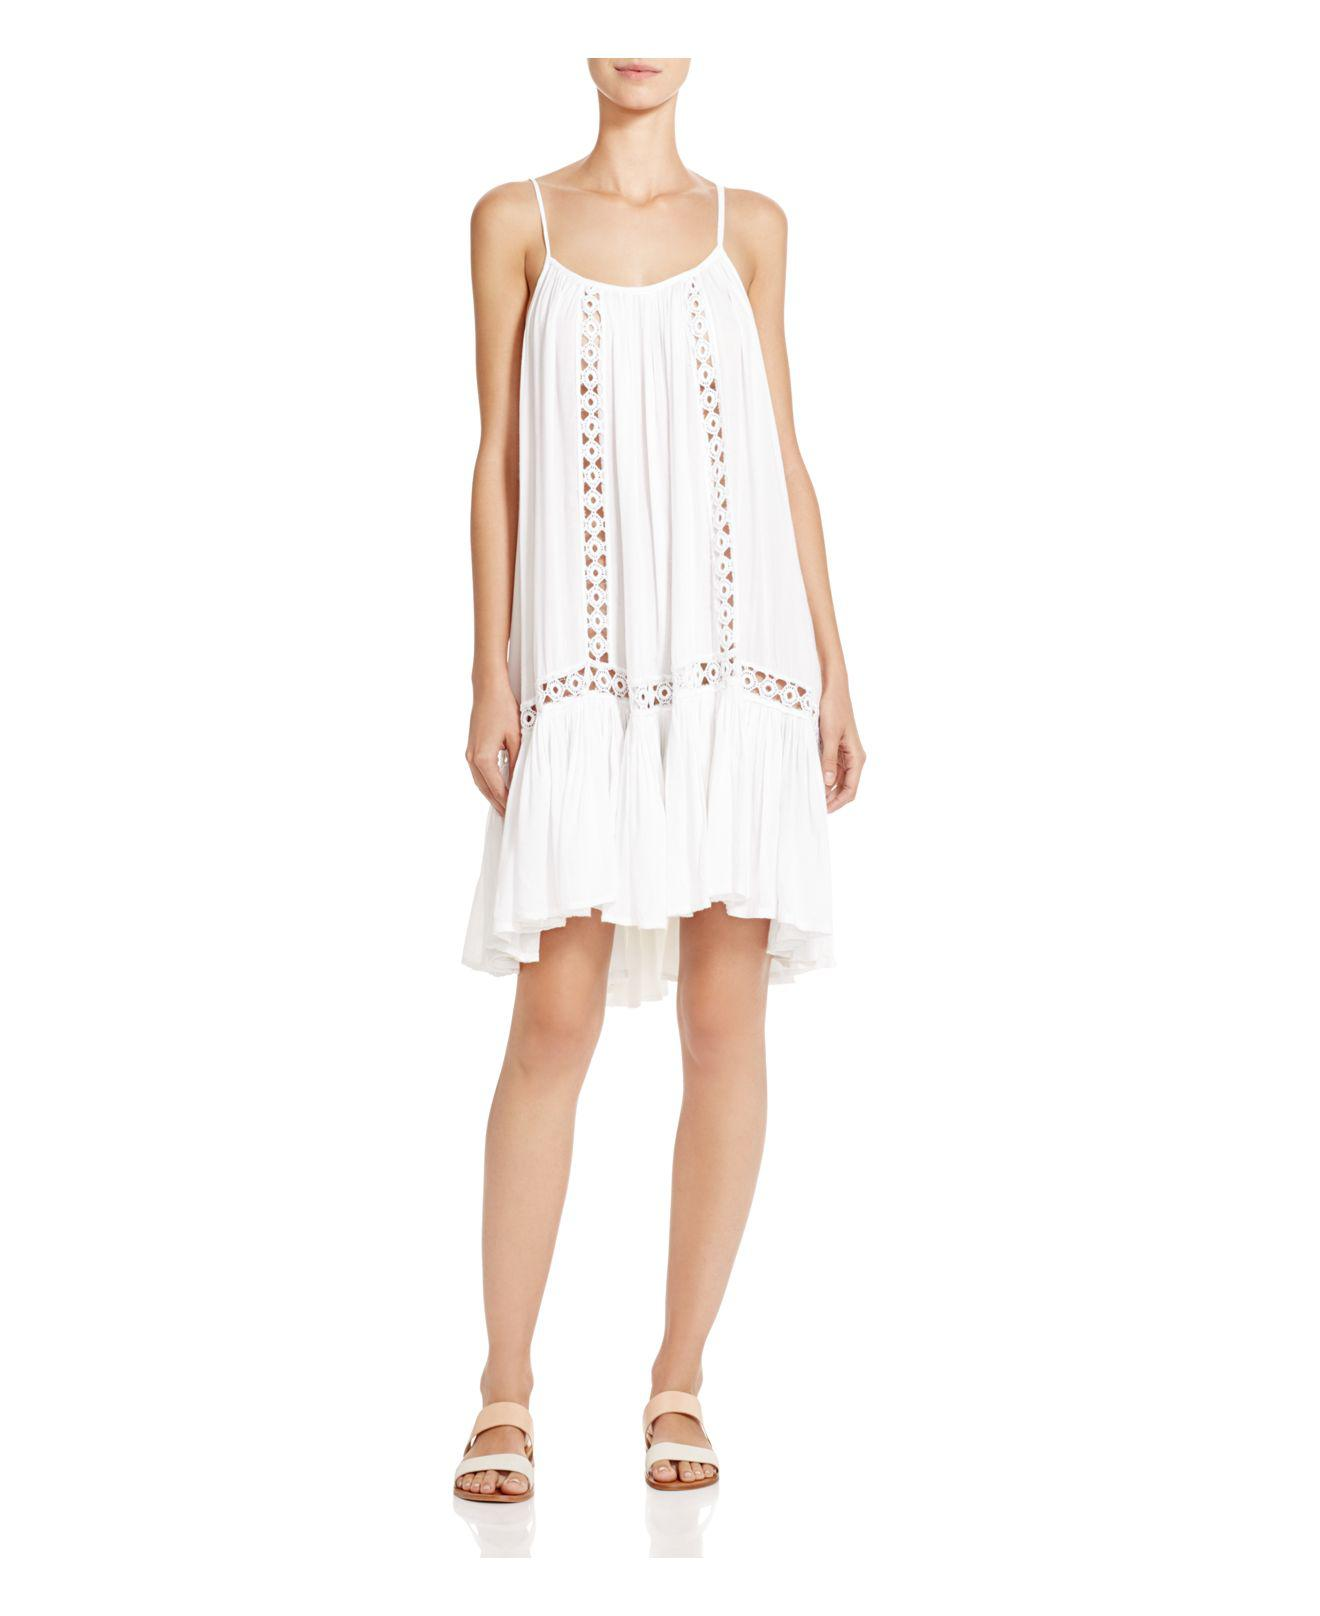 14d984ad65 Lyst - Boho Me Crocheted Trim Dress Swim Cover-up in White